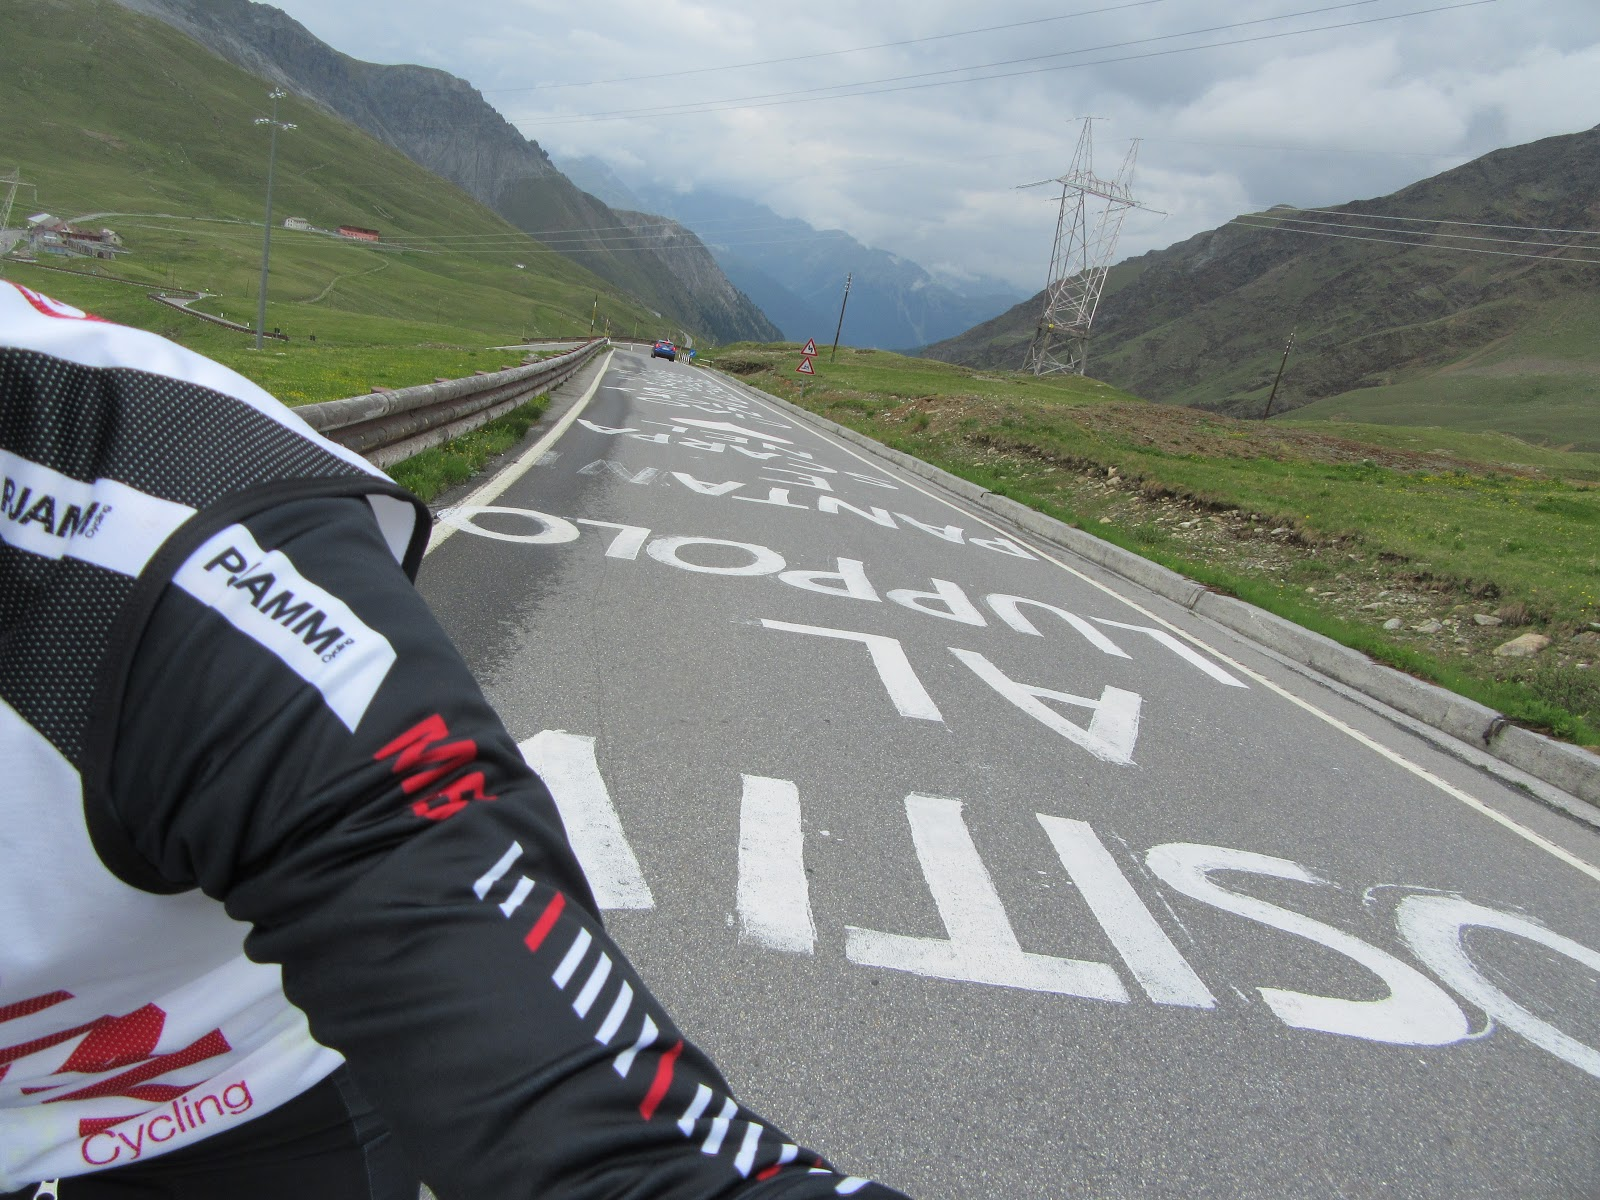 Climbing Umbrail Pass by bike to passo dello stelvio - giro d'italia signs painted on road, cyclist